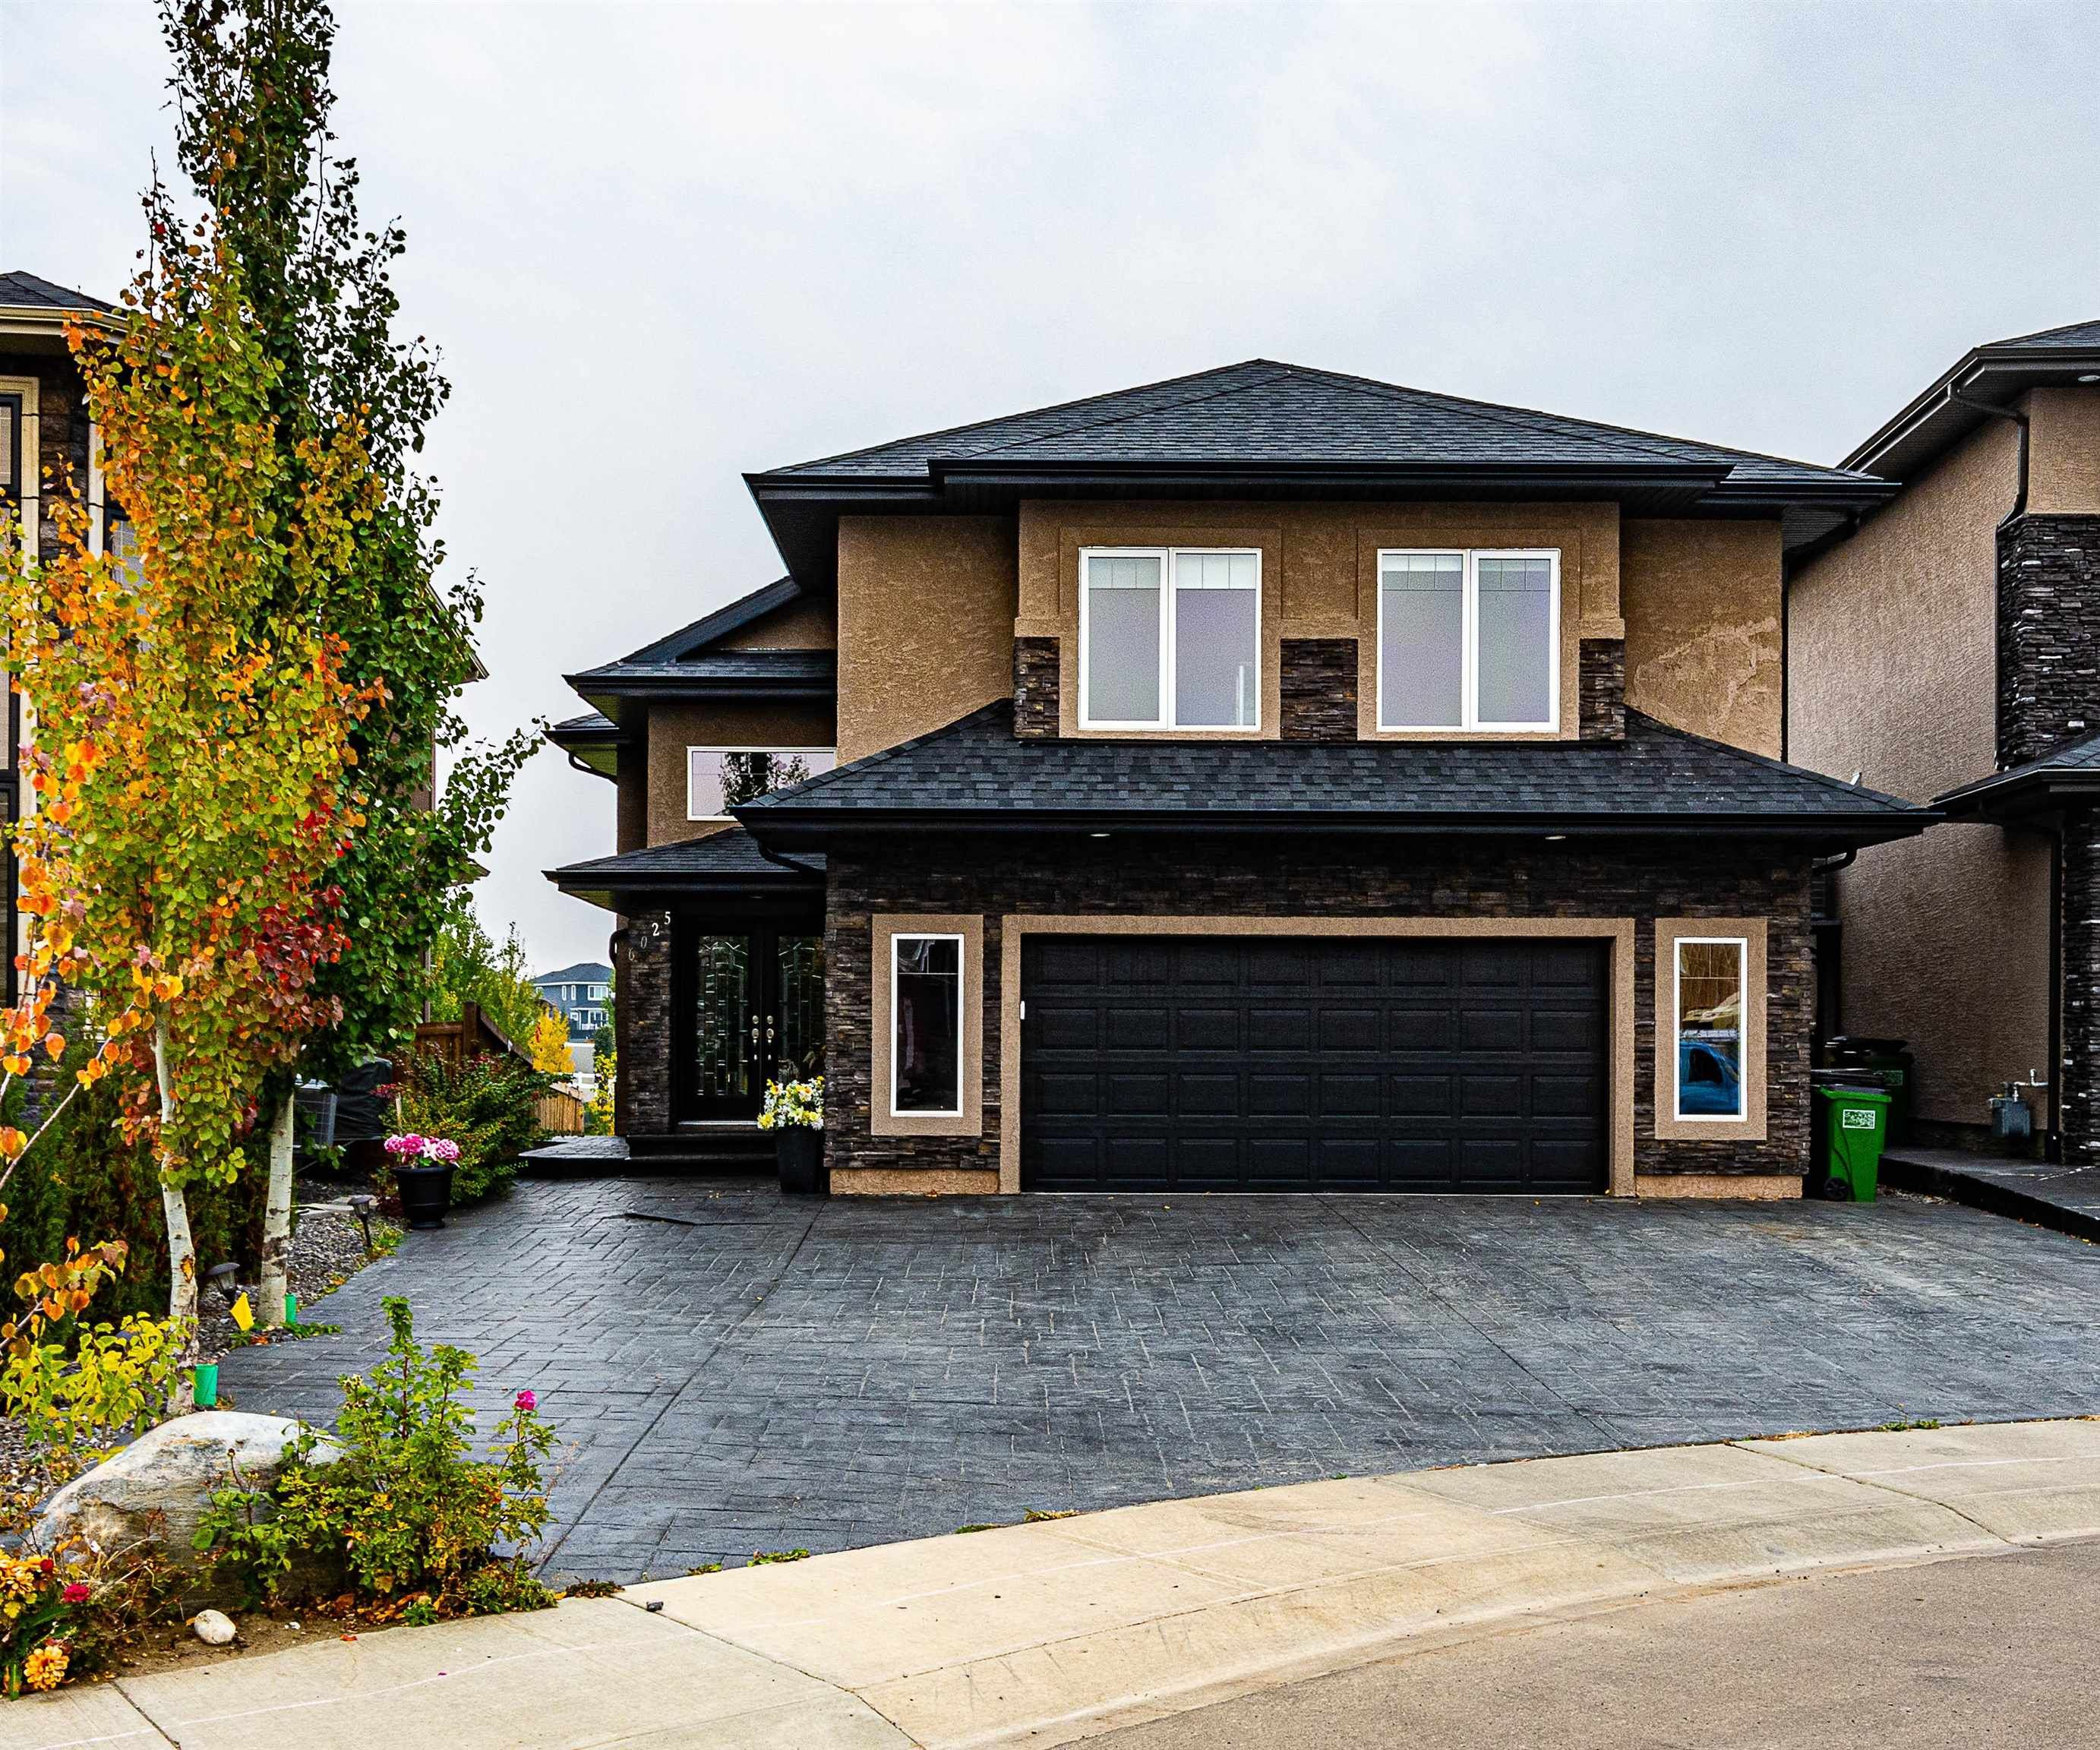 Main Photo: 6025 SCHONSEE Way in Edmonton: Zone 28 House for sale : MLS®# E4265892